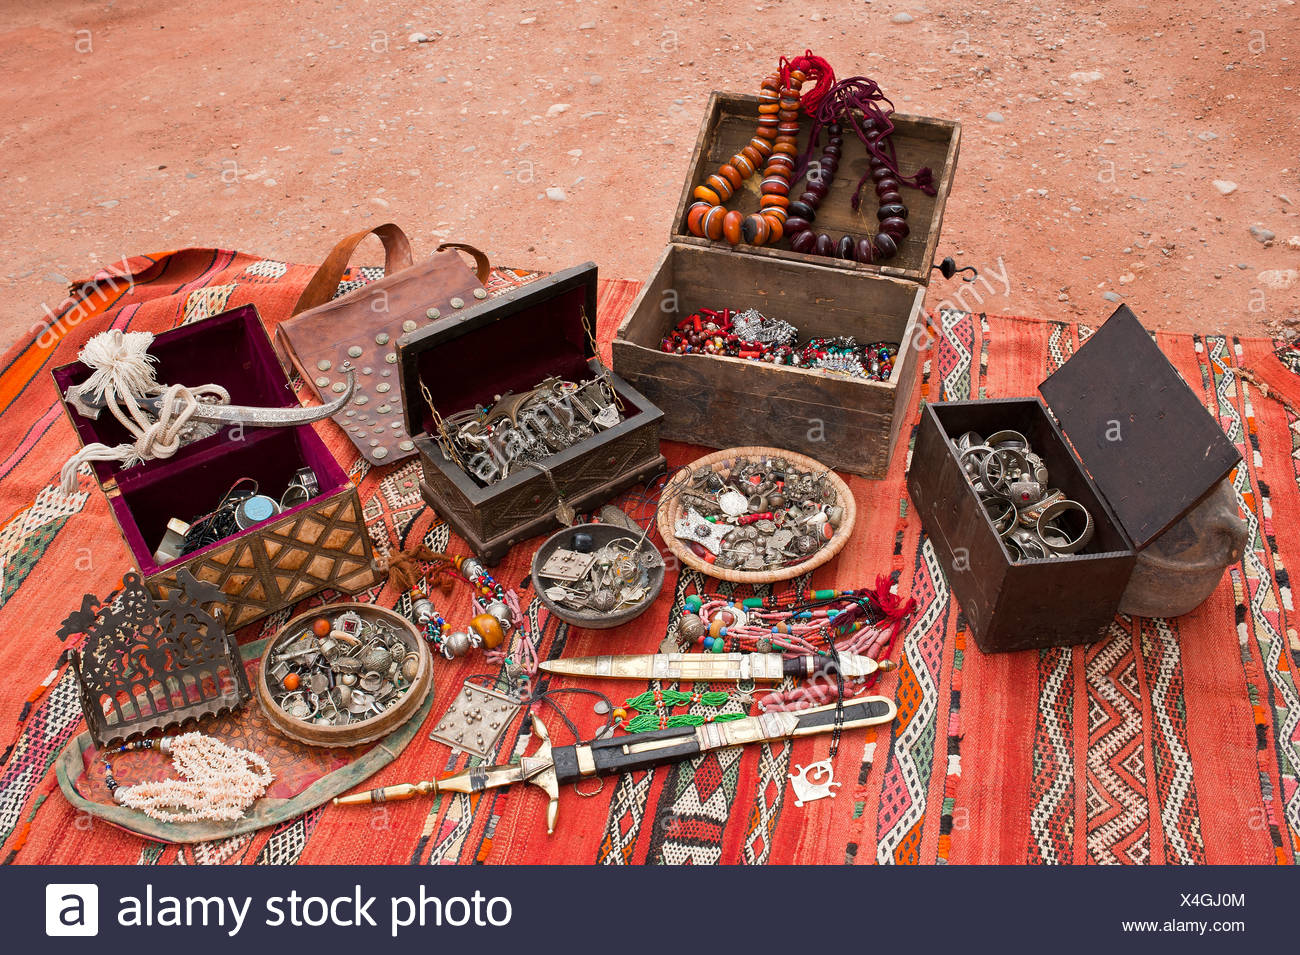 Little treasure chests, traditional oriental jewellery and decorated Touareg knife spread on a carpet, Morocco, Africa - Stock Image